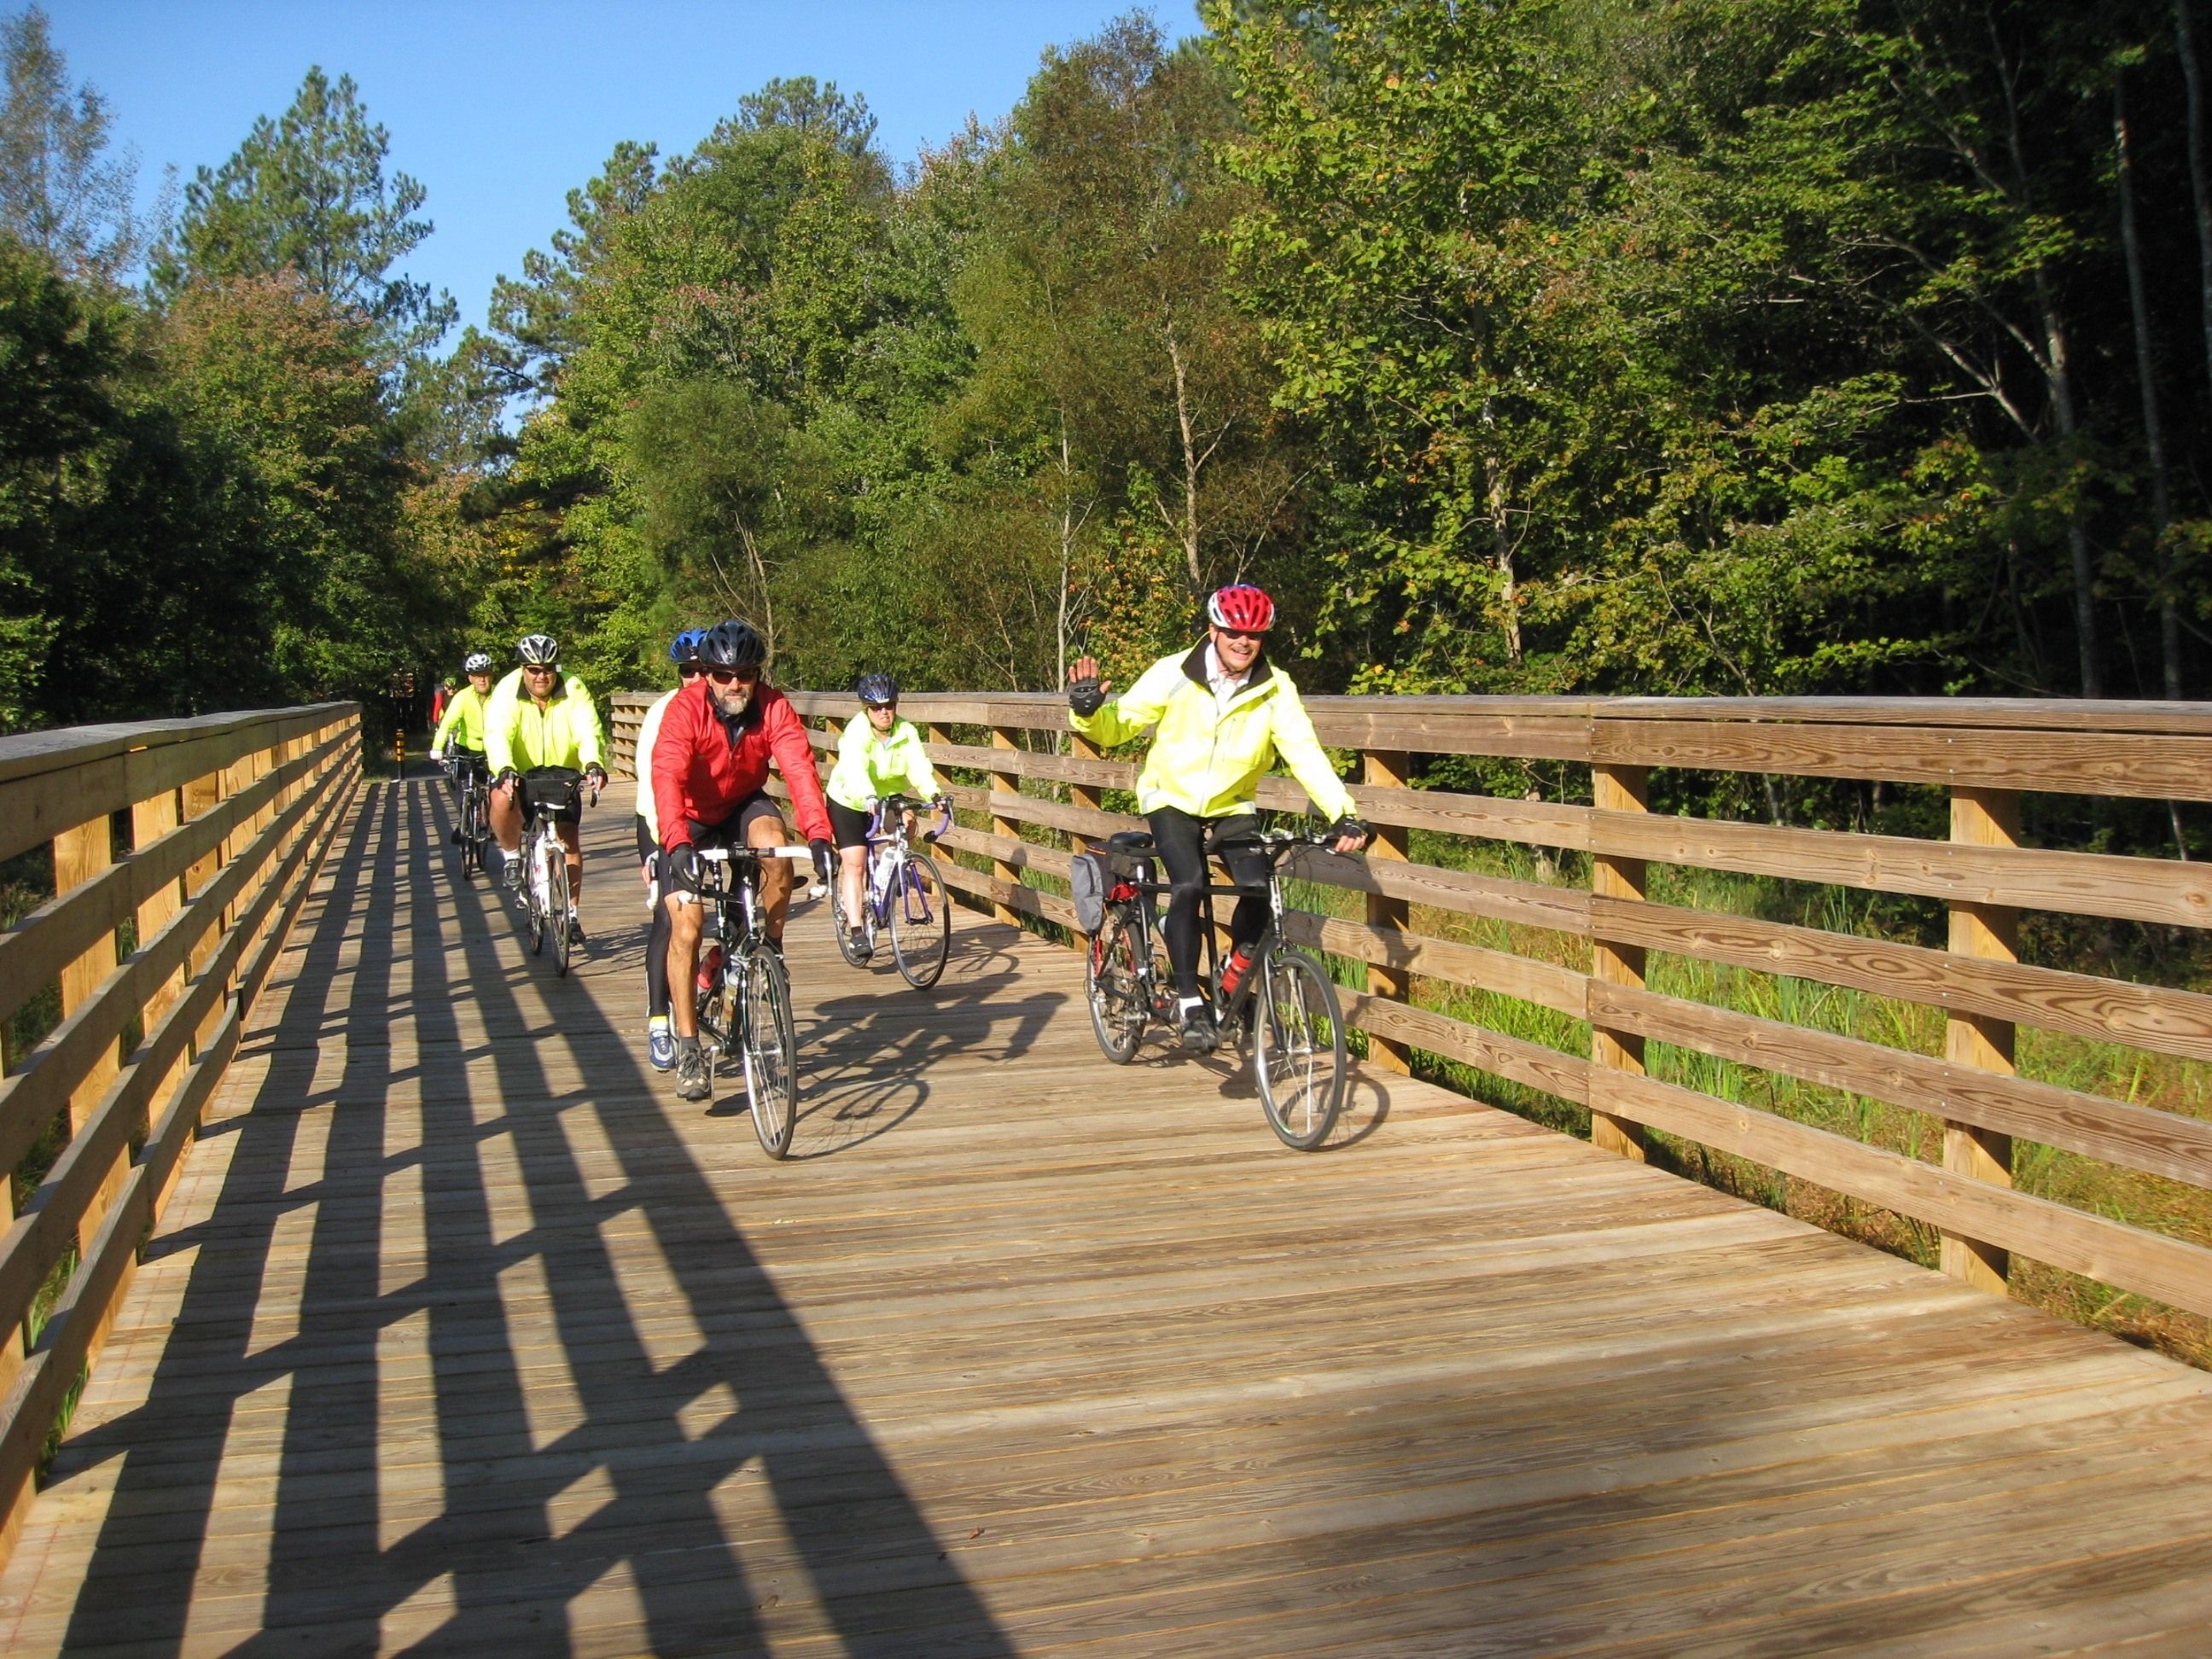 Pin By Jb On About Beauty Of The Seasons Each Year Virginia Travel Virginia Capital Trail Bike Route